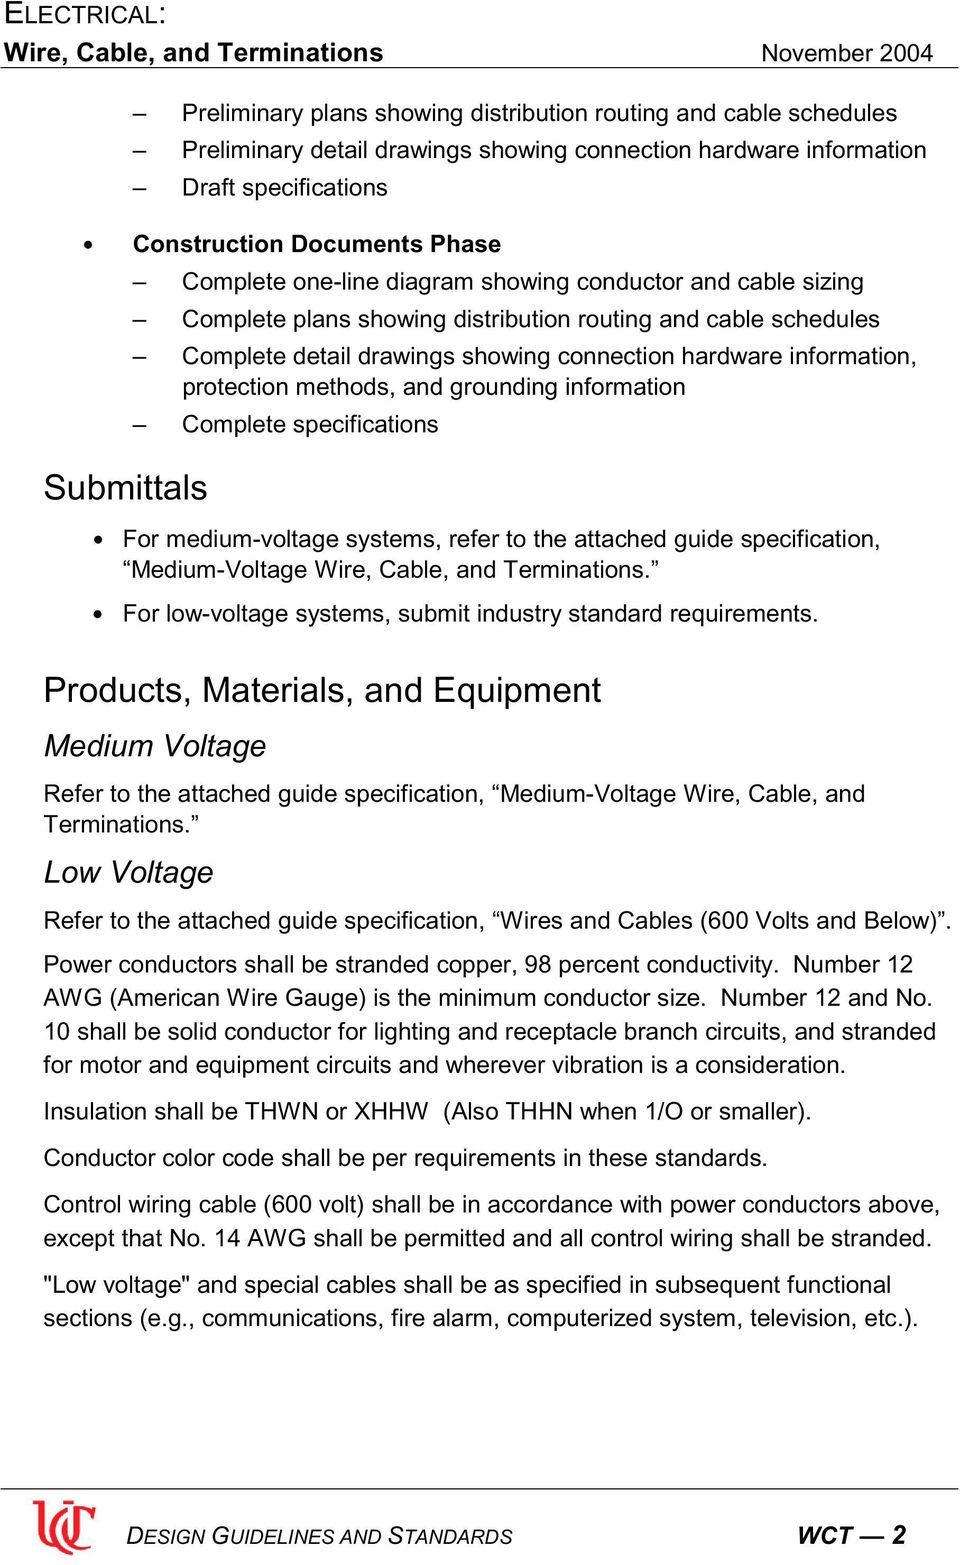 Electrical Wire Cable And Terminations Pdf Color Code Requirements Protection Methods Grounding Information Complete Specifications Submittals For Medium Voltage Systems Refer